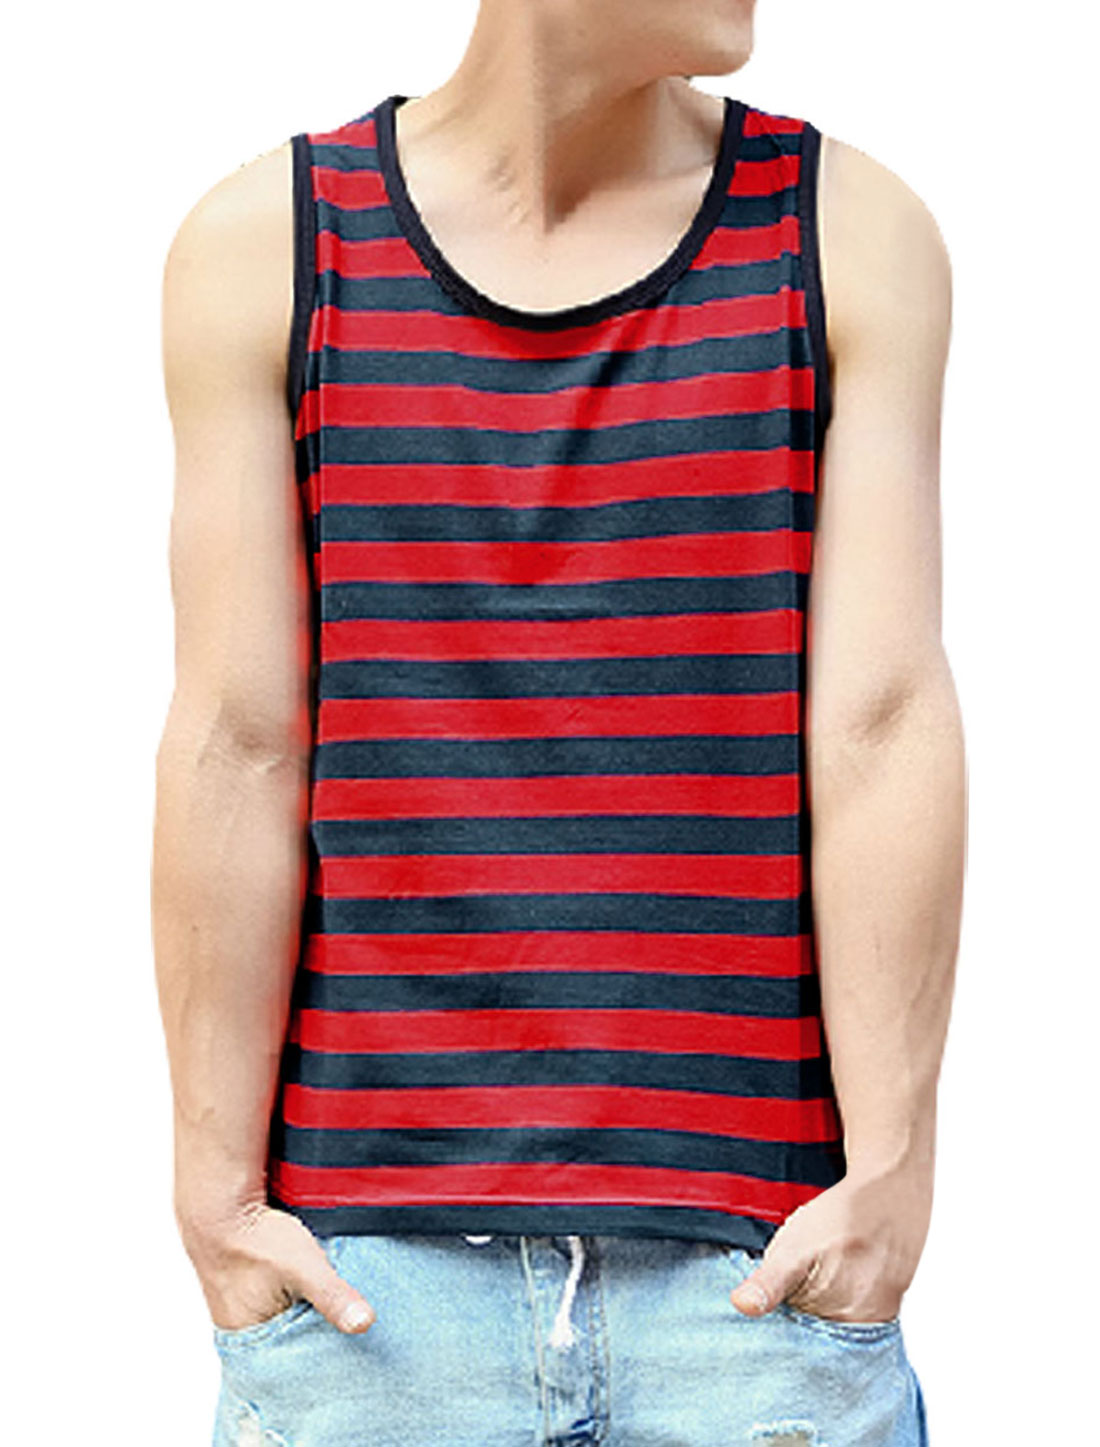 Men Cozy Fit Sleeveless Stripes Two Tone Tank Top Navy Blue Red M